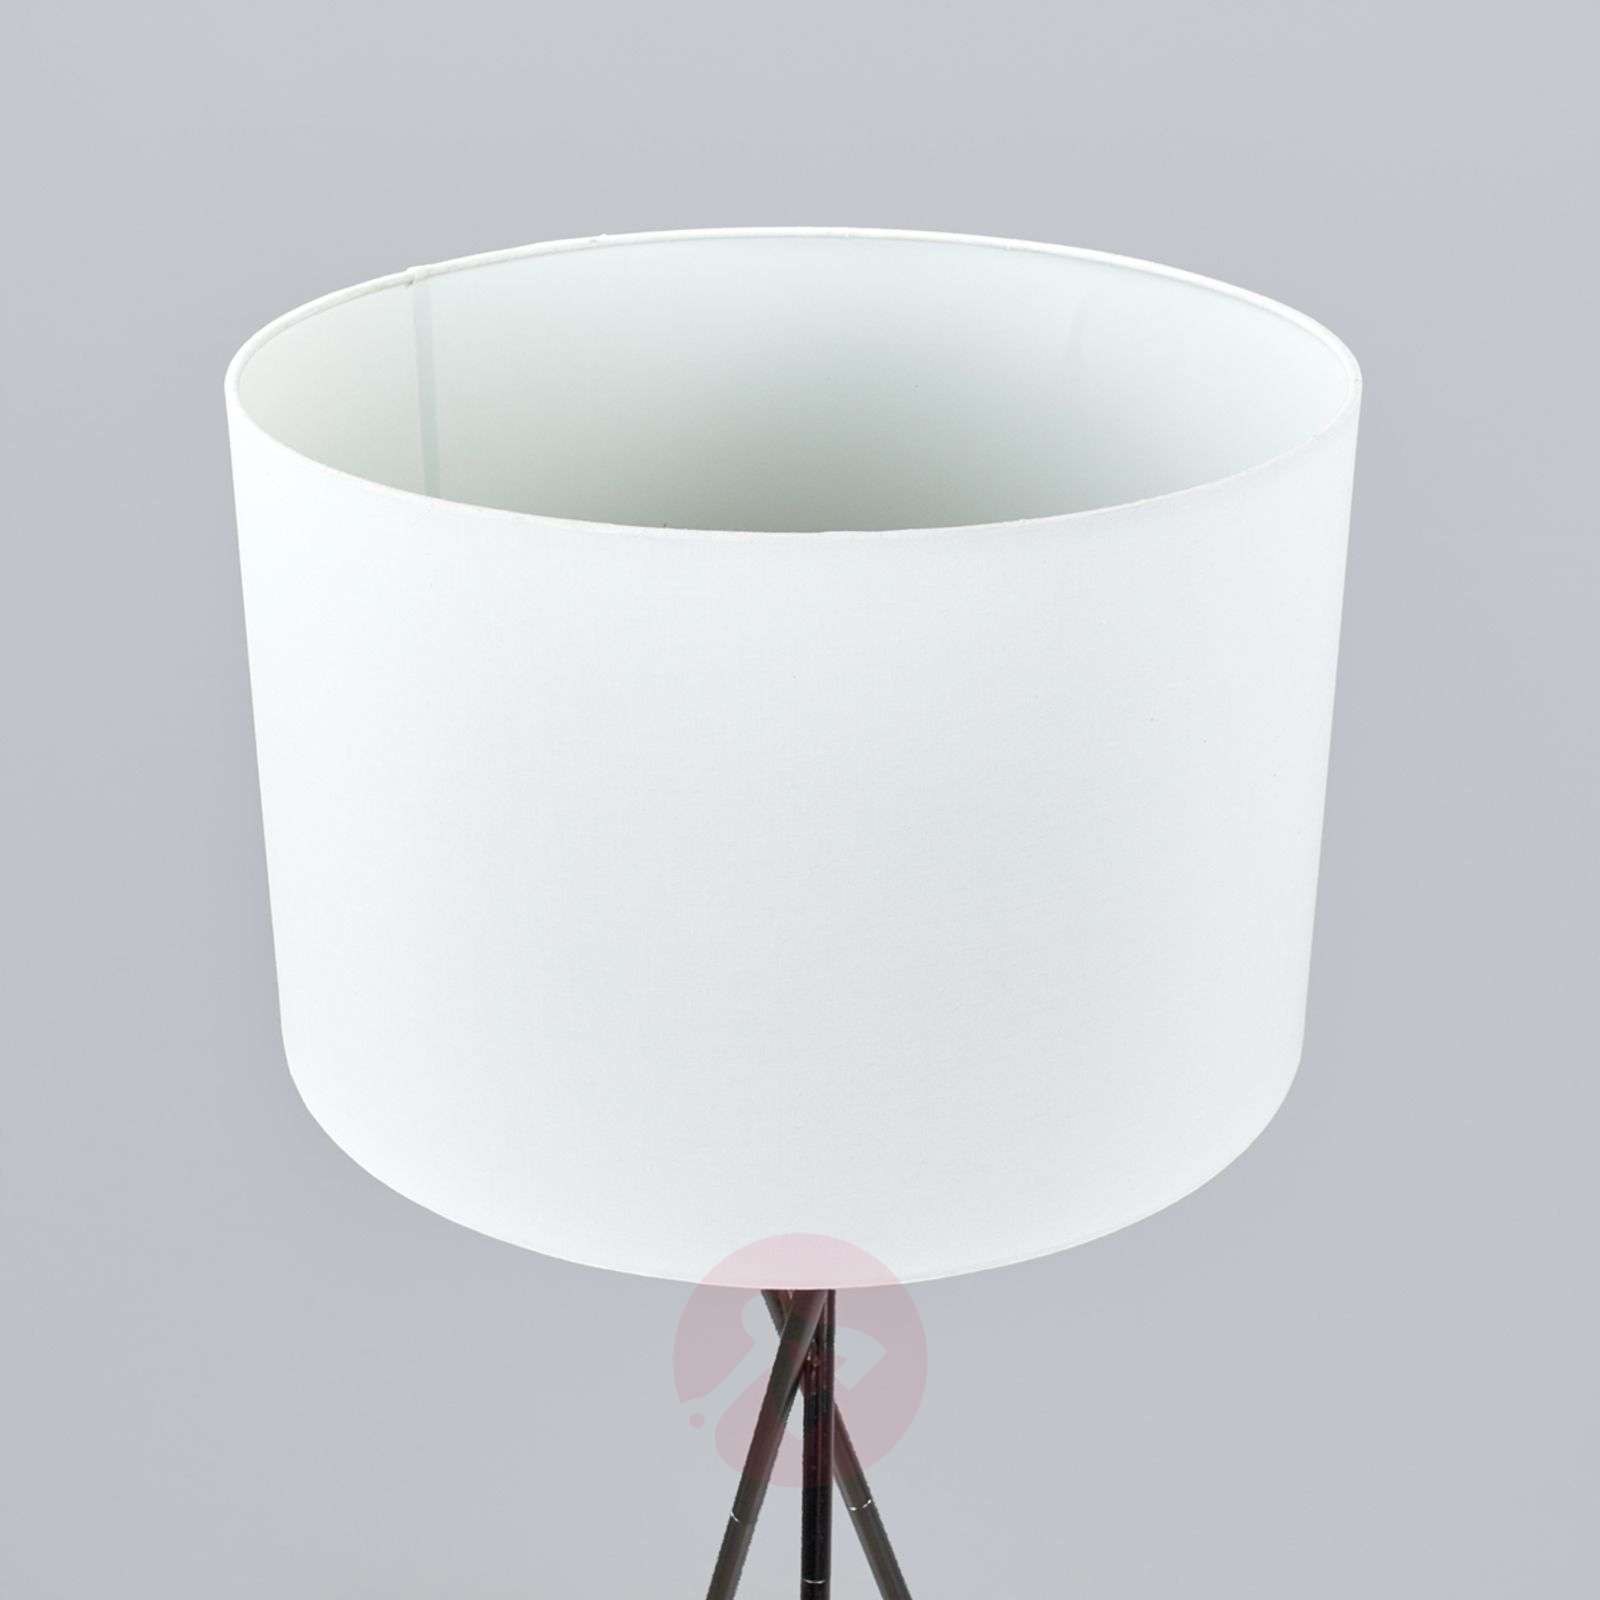 Tripod floor lamp Fiby, white fabric lampshade-4018034-02